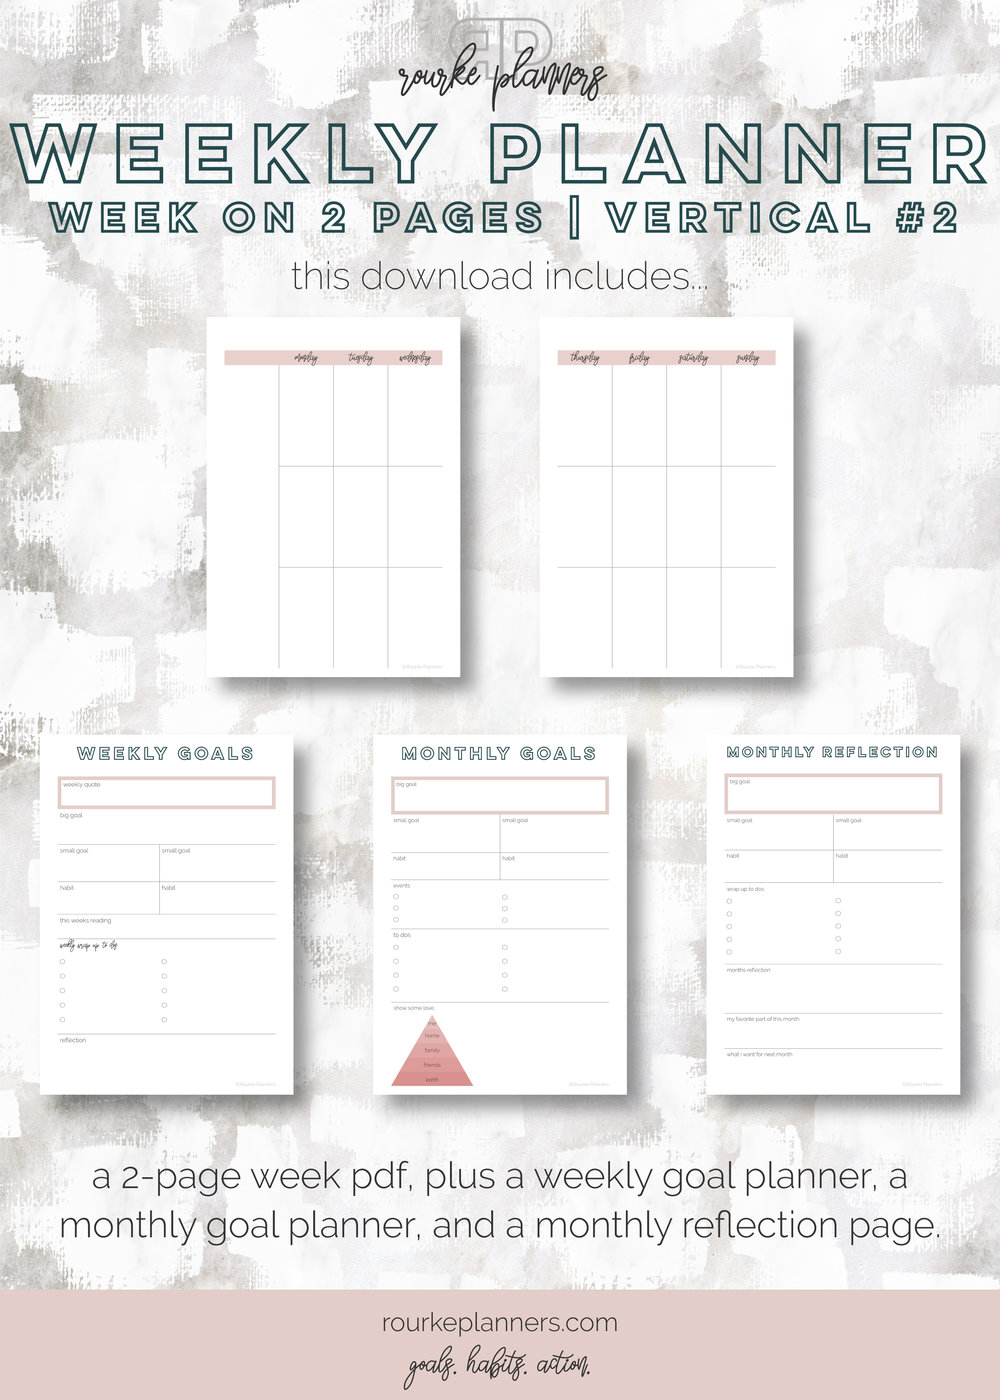 Weekly Vertical Planner #2 | A5 Size, OG Style, Undated | Rourke Planners